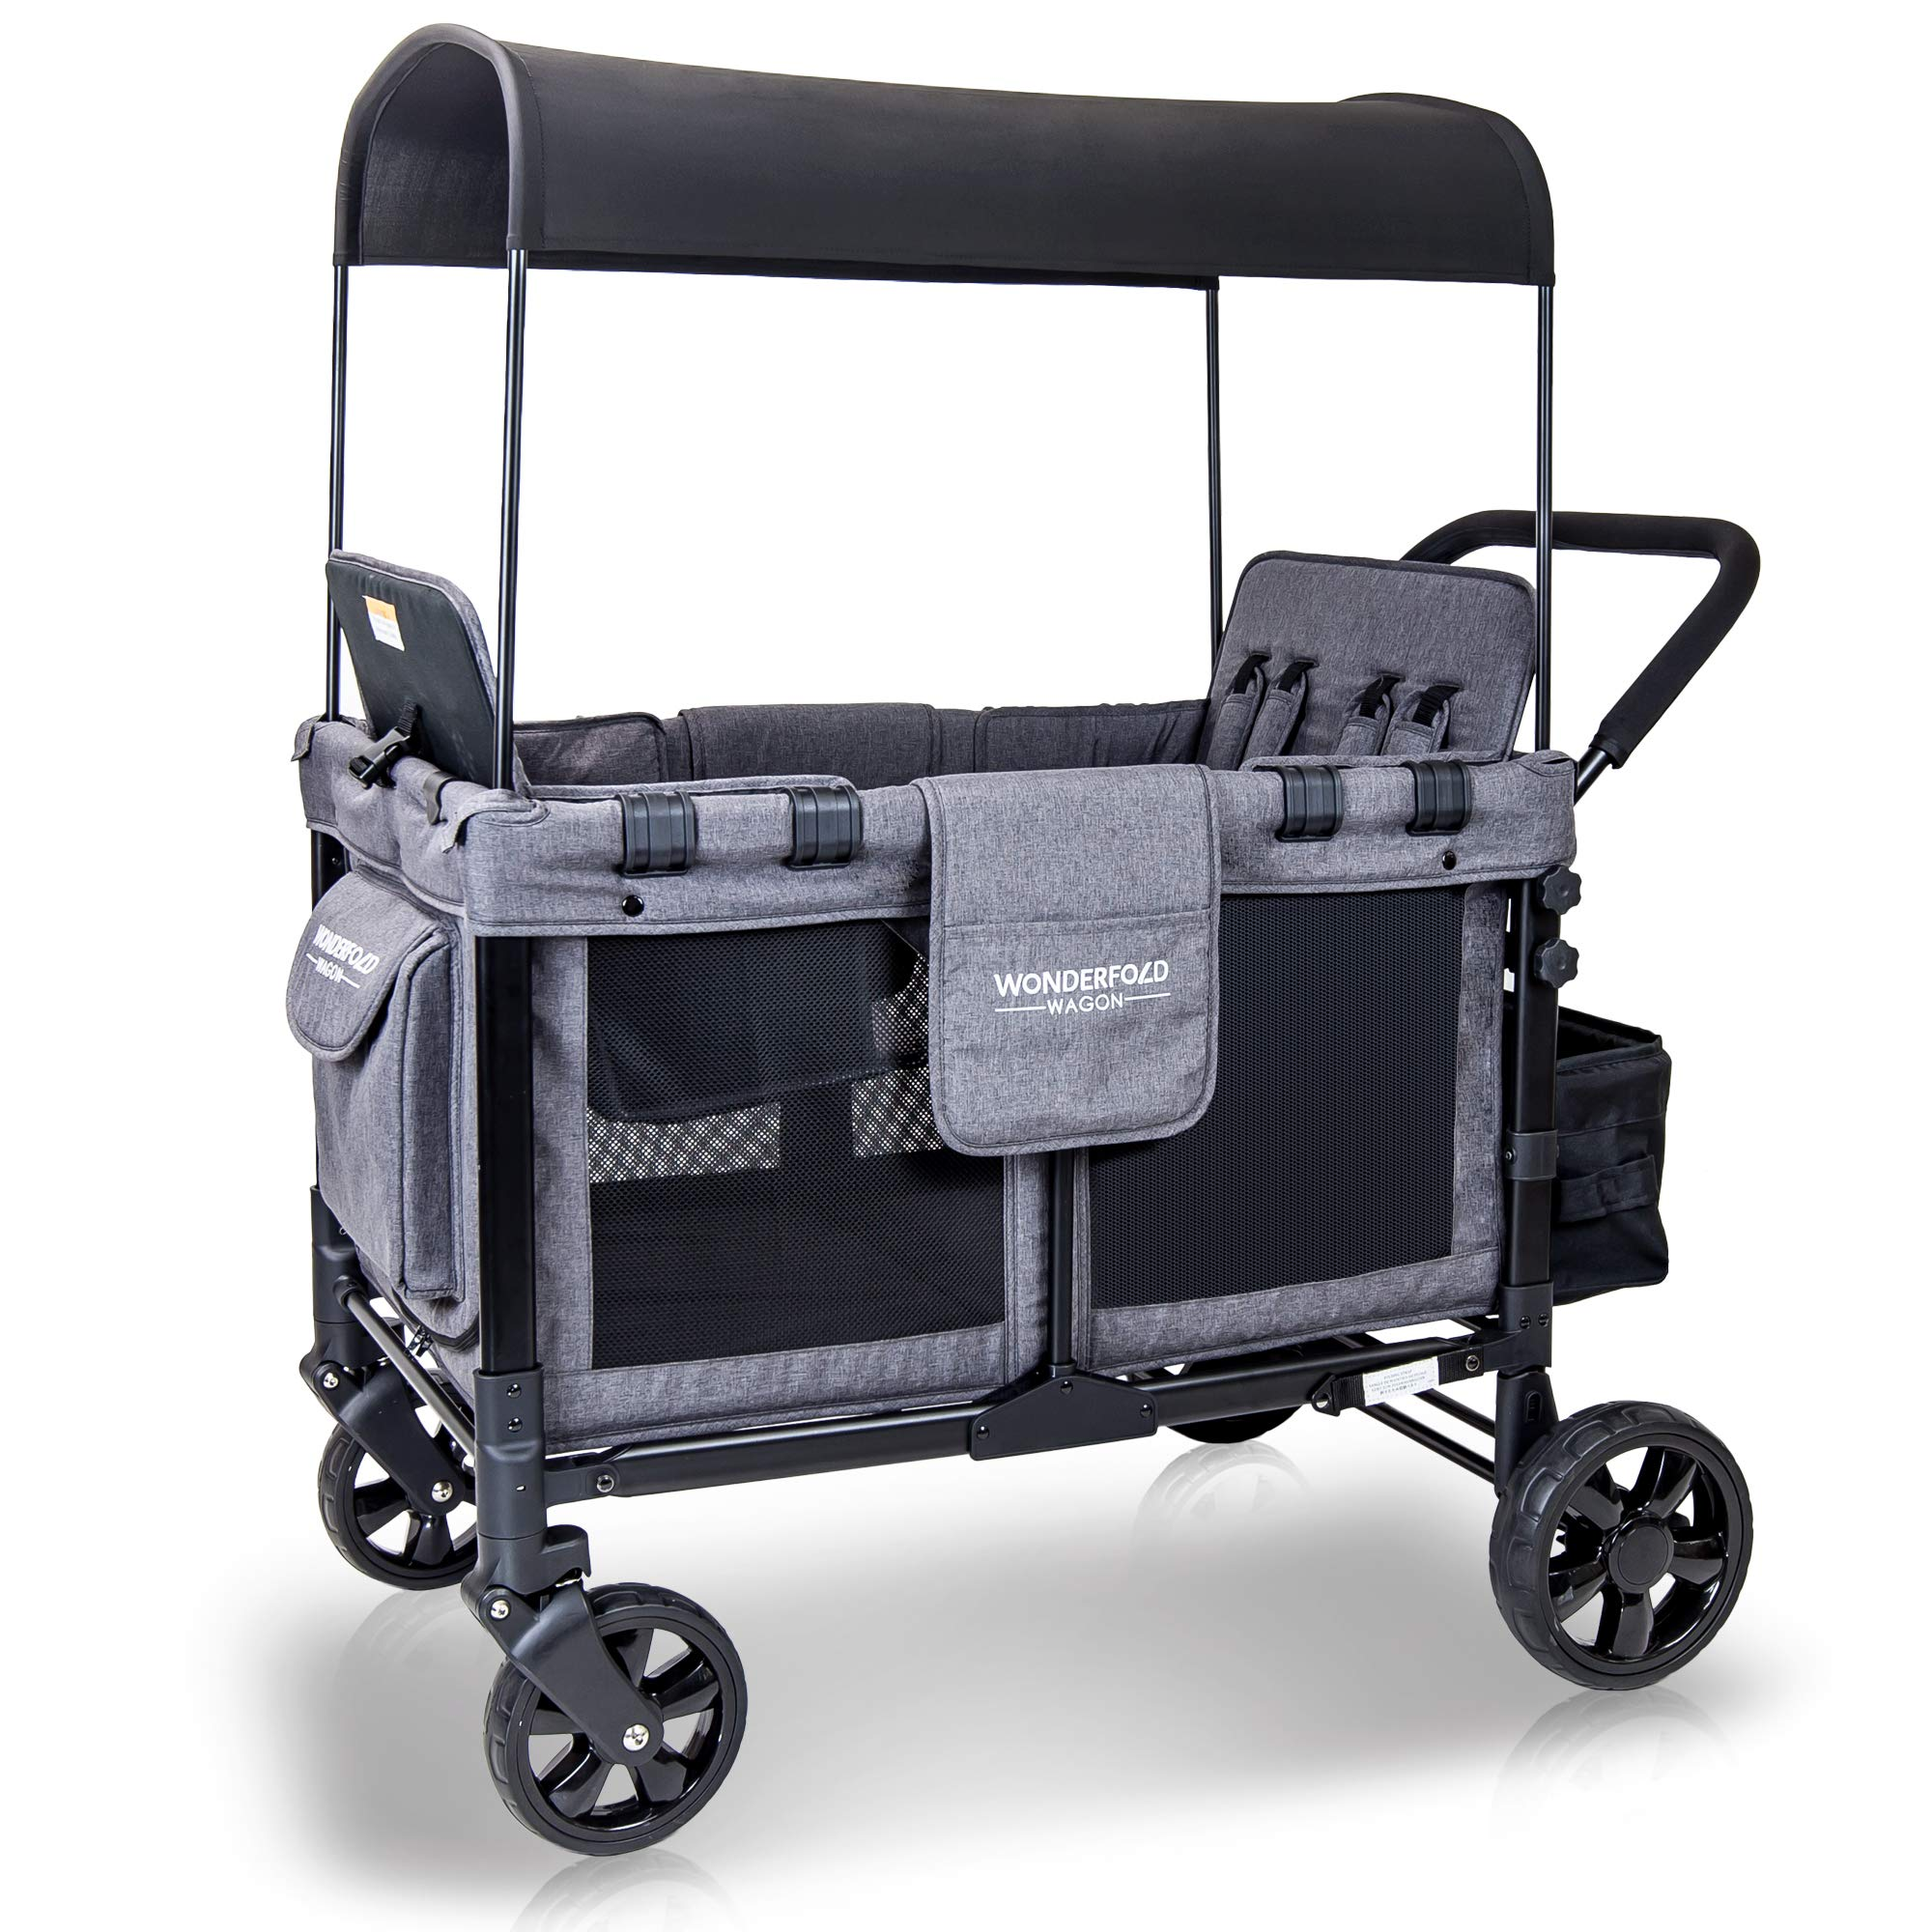 WonderFold Baby Multi-Function Four Passenger Wagon Folding Quad Stroller with Removable Reversible Canopy & Seats up to 4 Toddlers, Gray by WonderFold